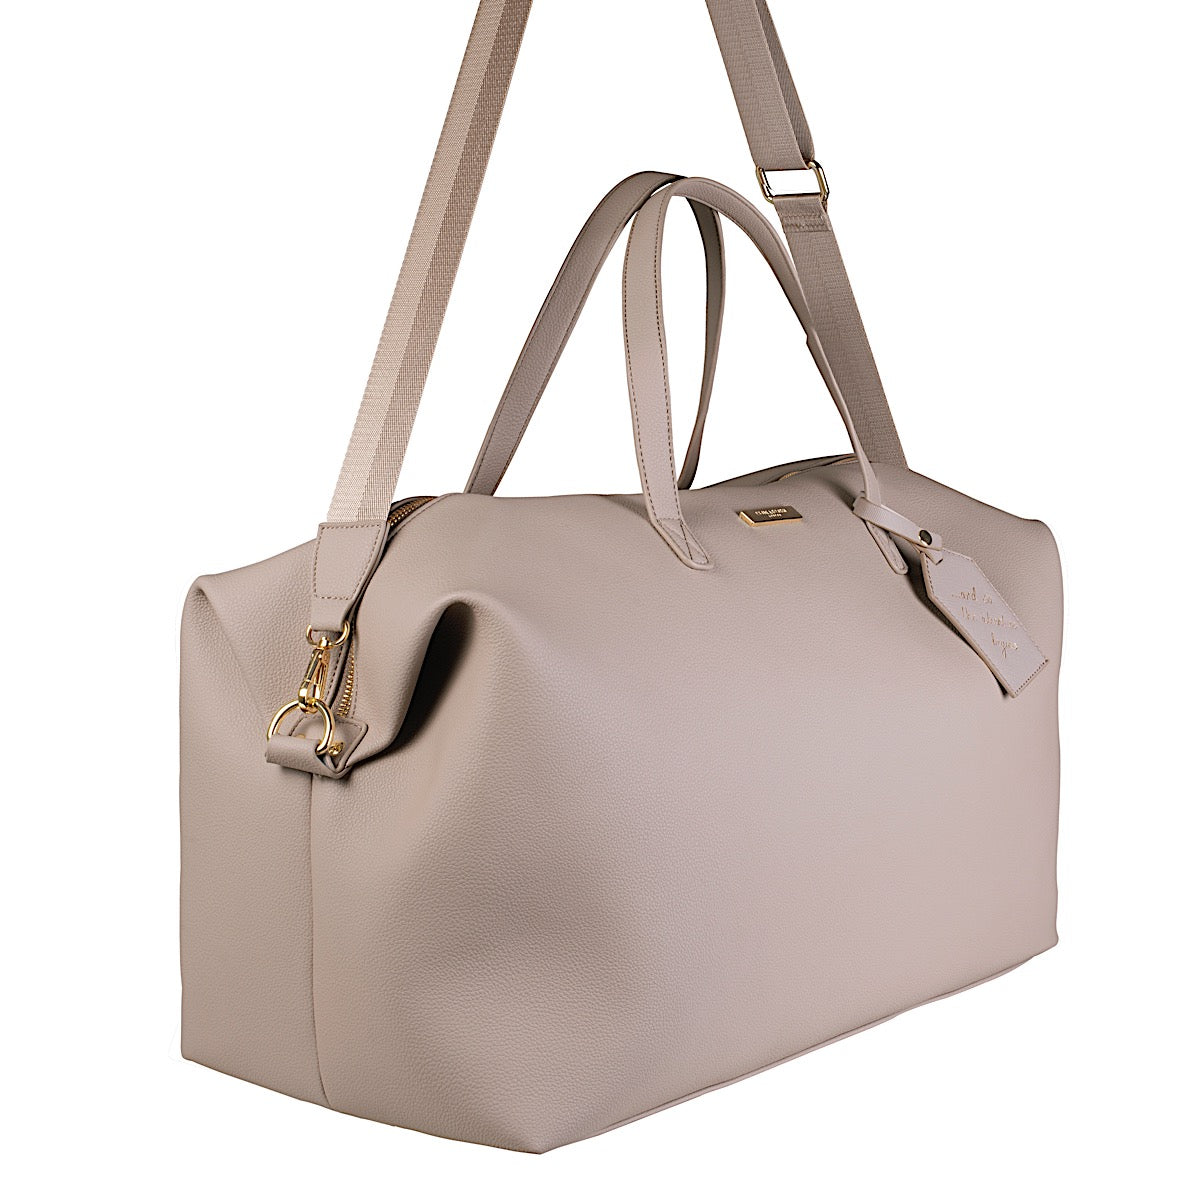 Katie Loxton Adventure Begins Weekend Holdall Bag - taupe